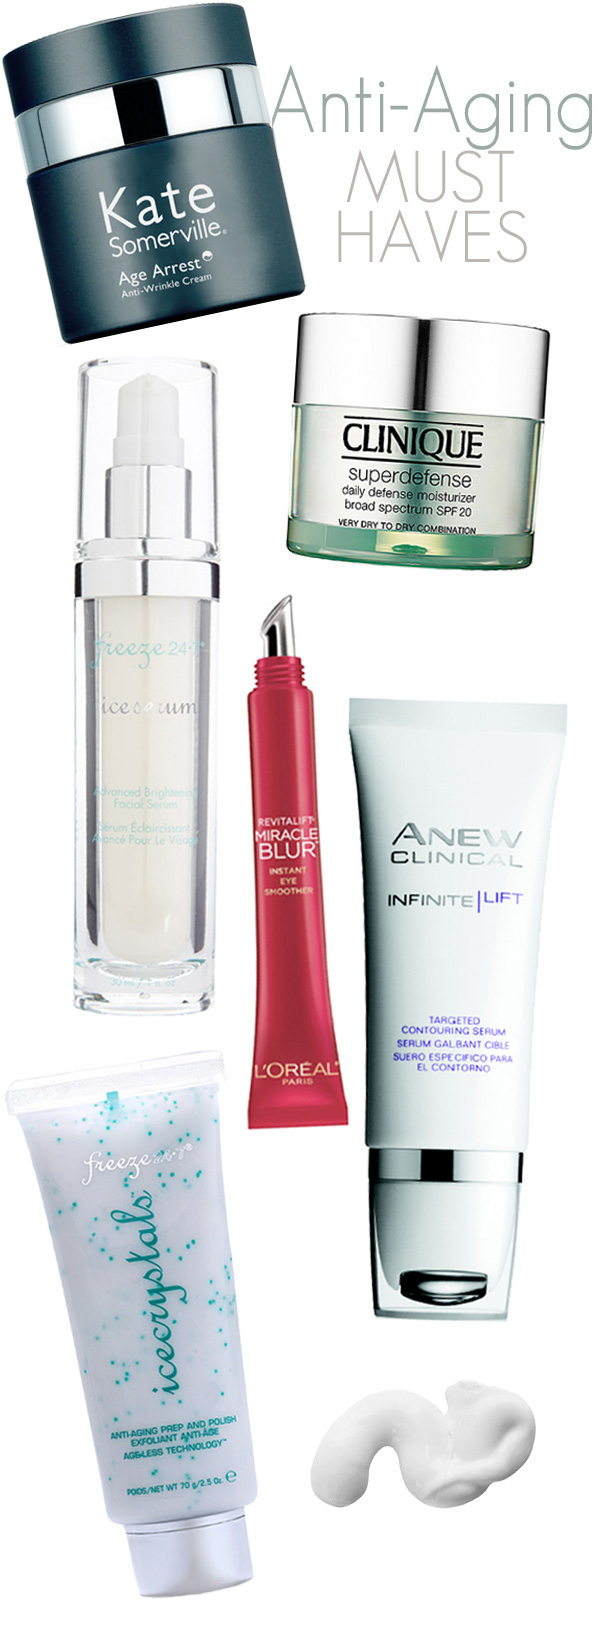 Anti-Aging Must Haves: The best anti-aging creams, moisturizers and eye creams to add to your skin care regimen.